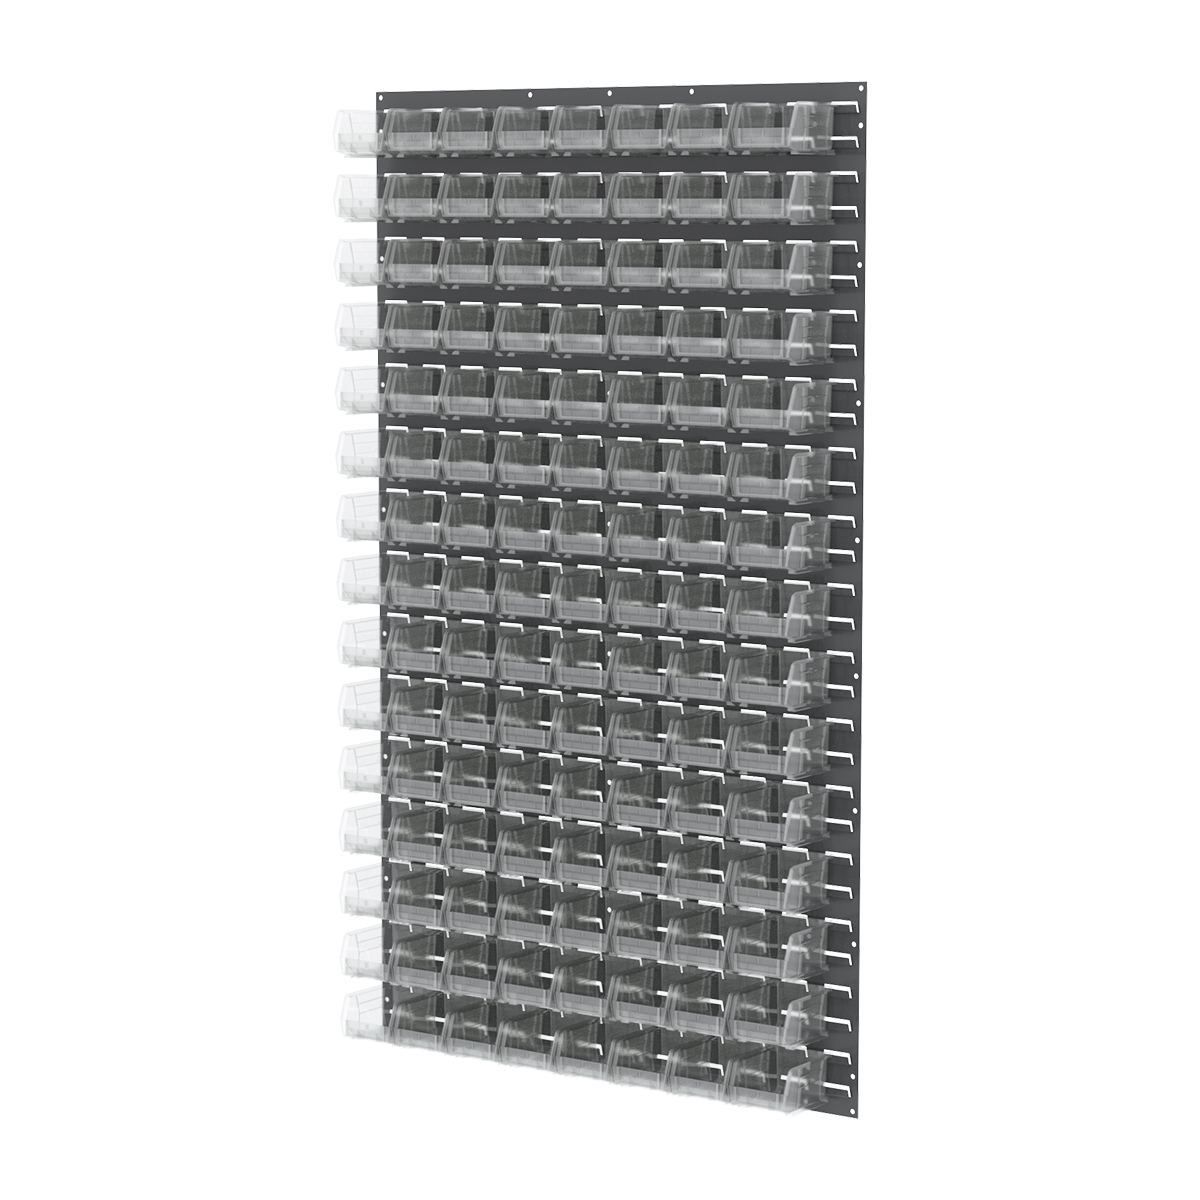 Item DISCONTINUED by Manufacturer.  Louvered Wall Panel, 36 x 61, w/ 96 AkroBins 30210, Gray/Clear (30161210SC).  This item sold in carton quantities of 1.